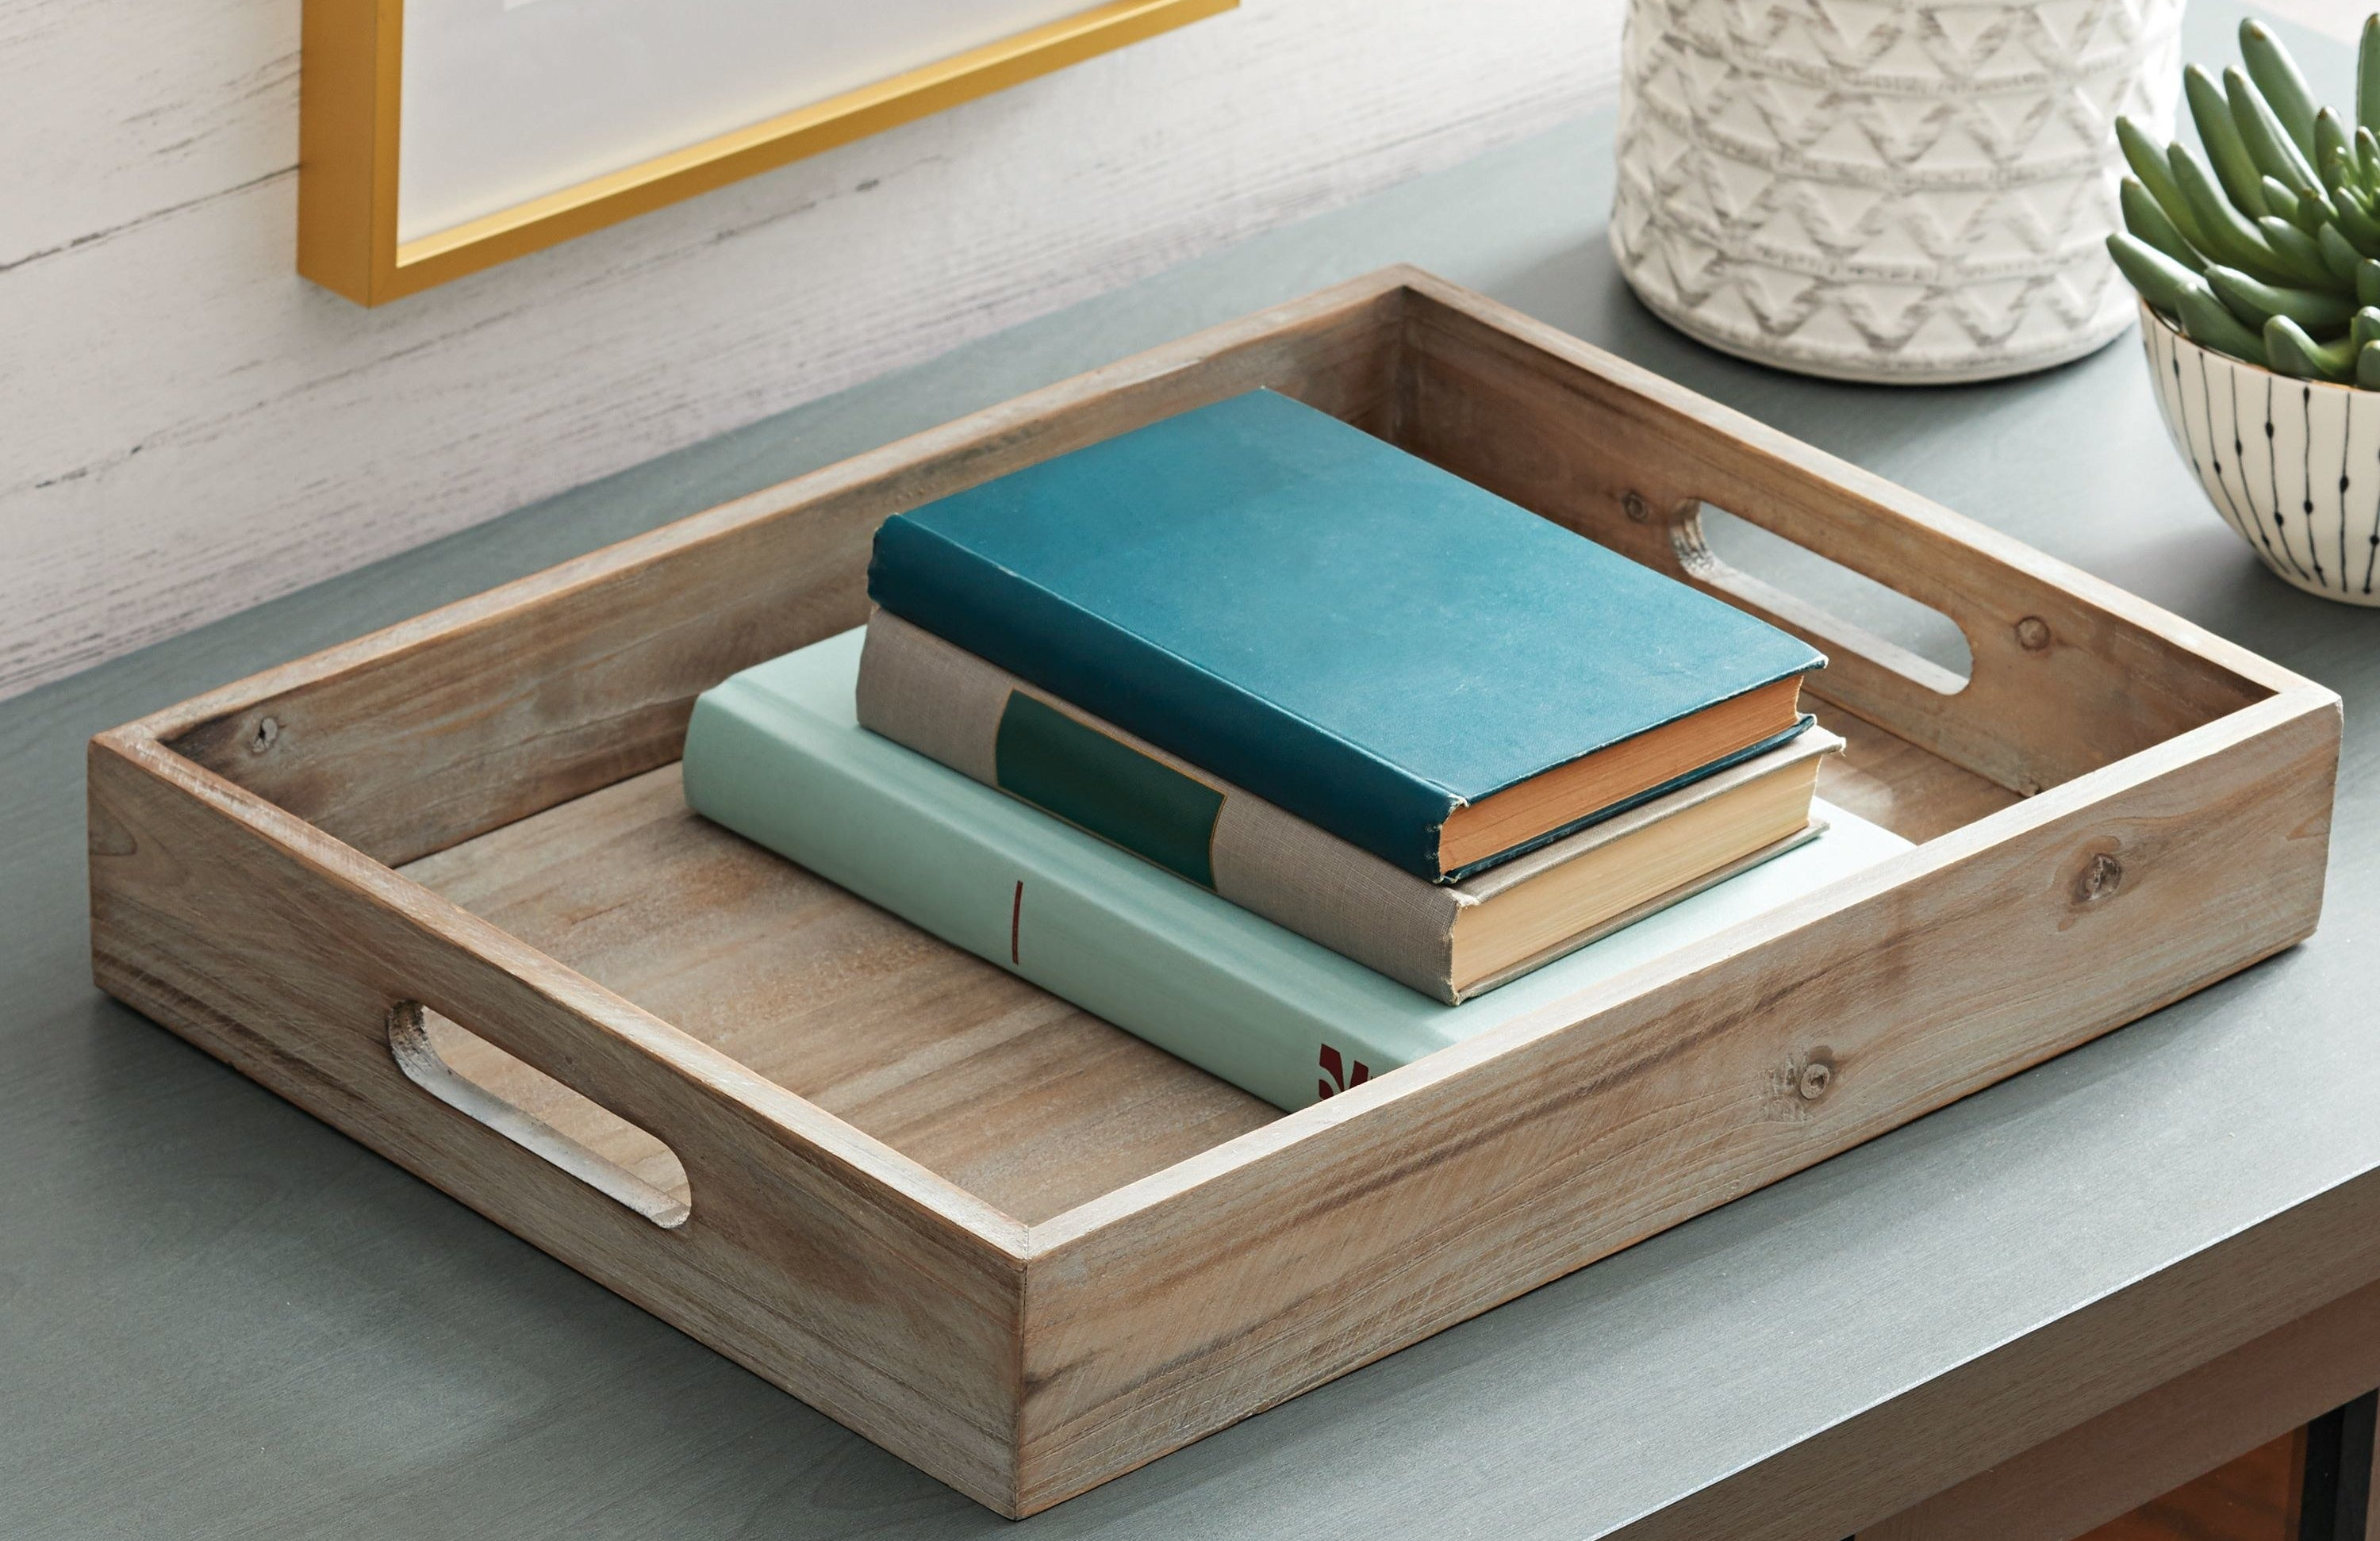 The wooden tabletop tray with handles